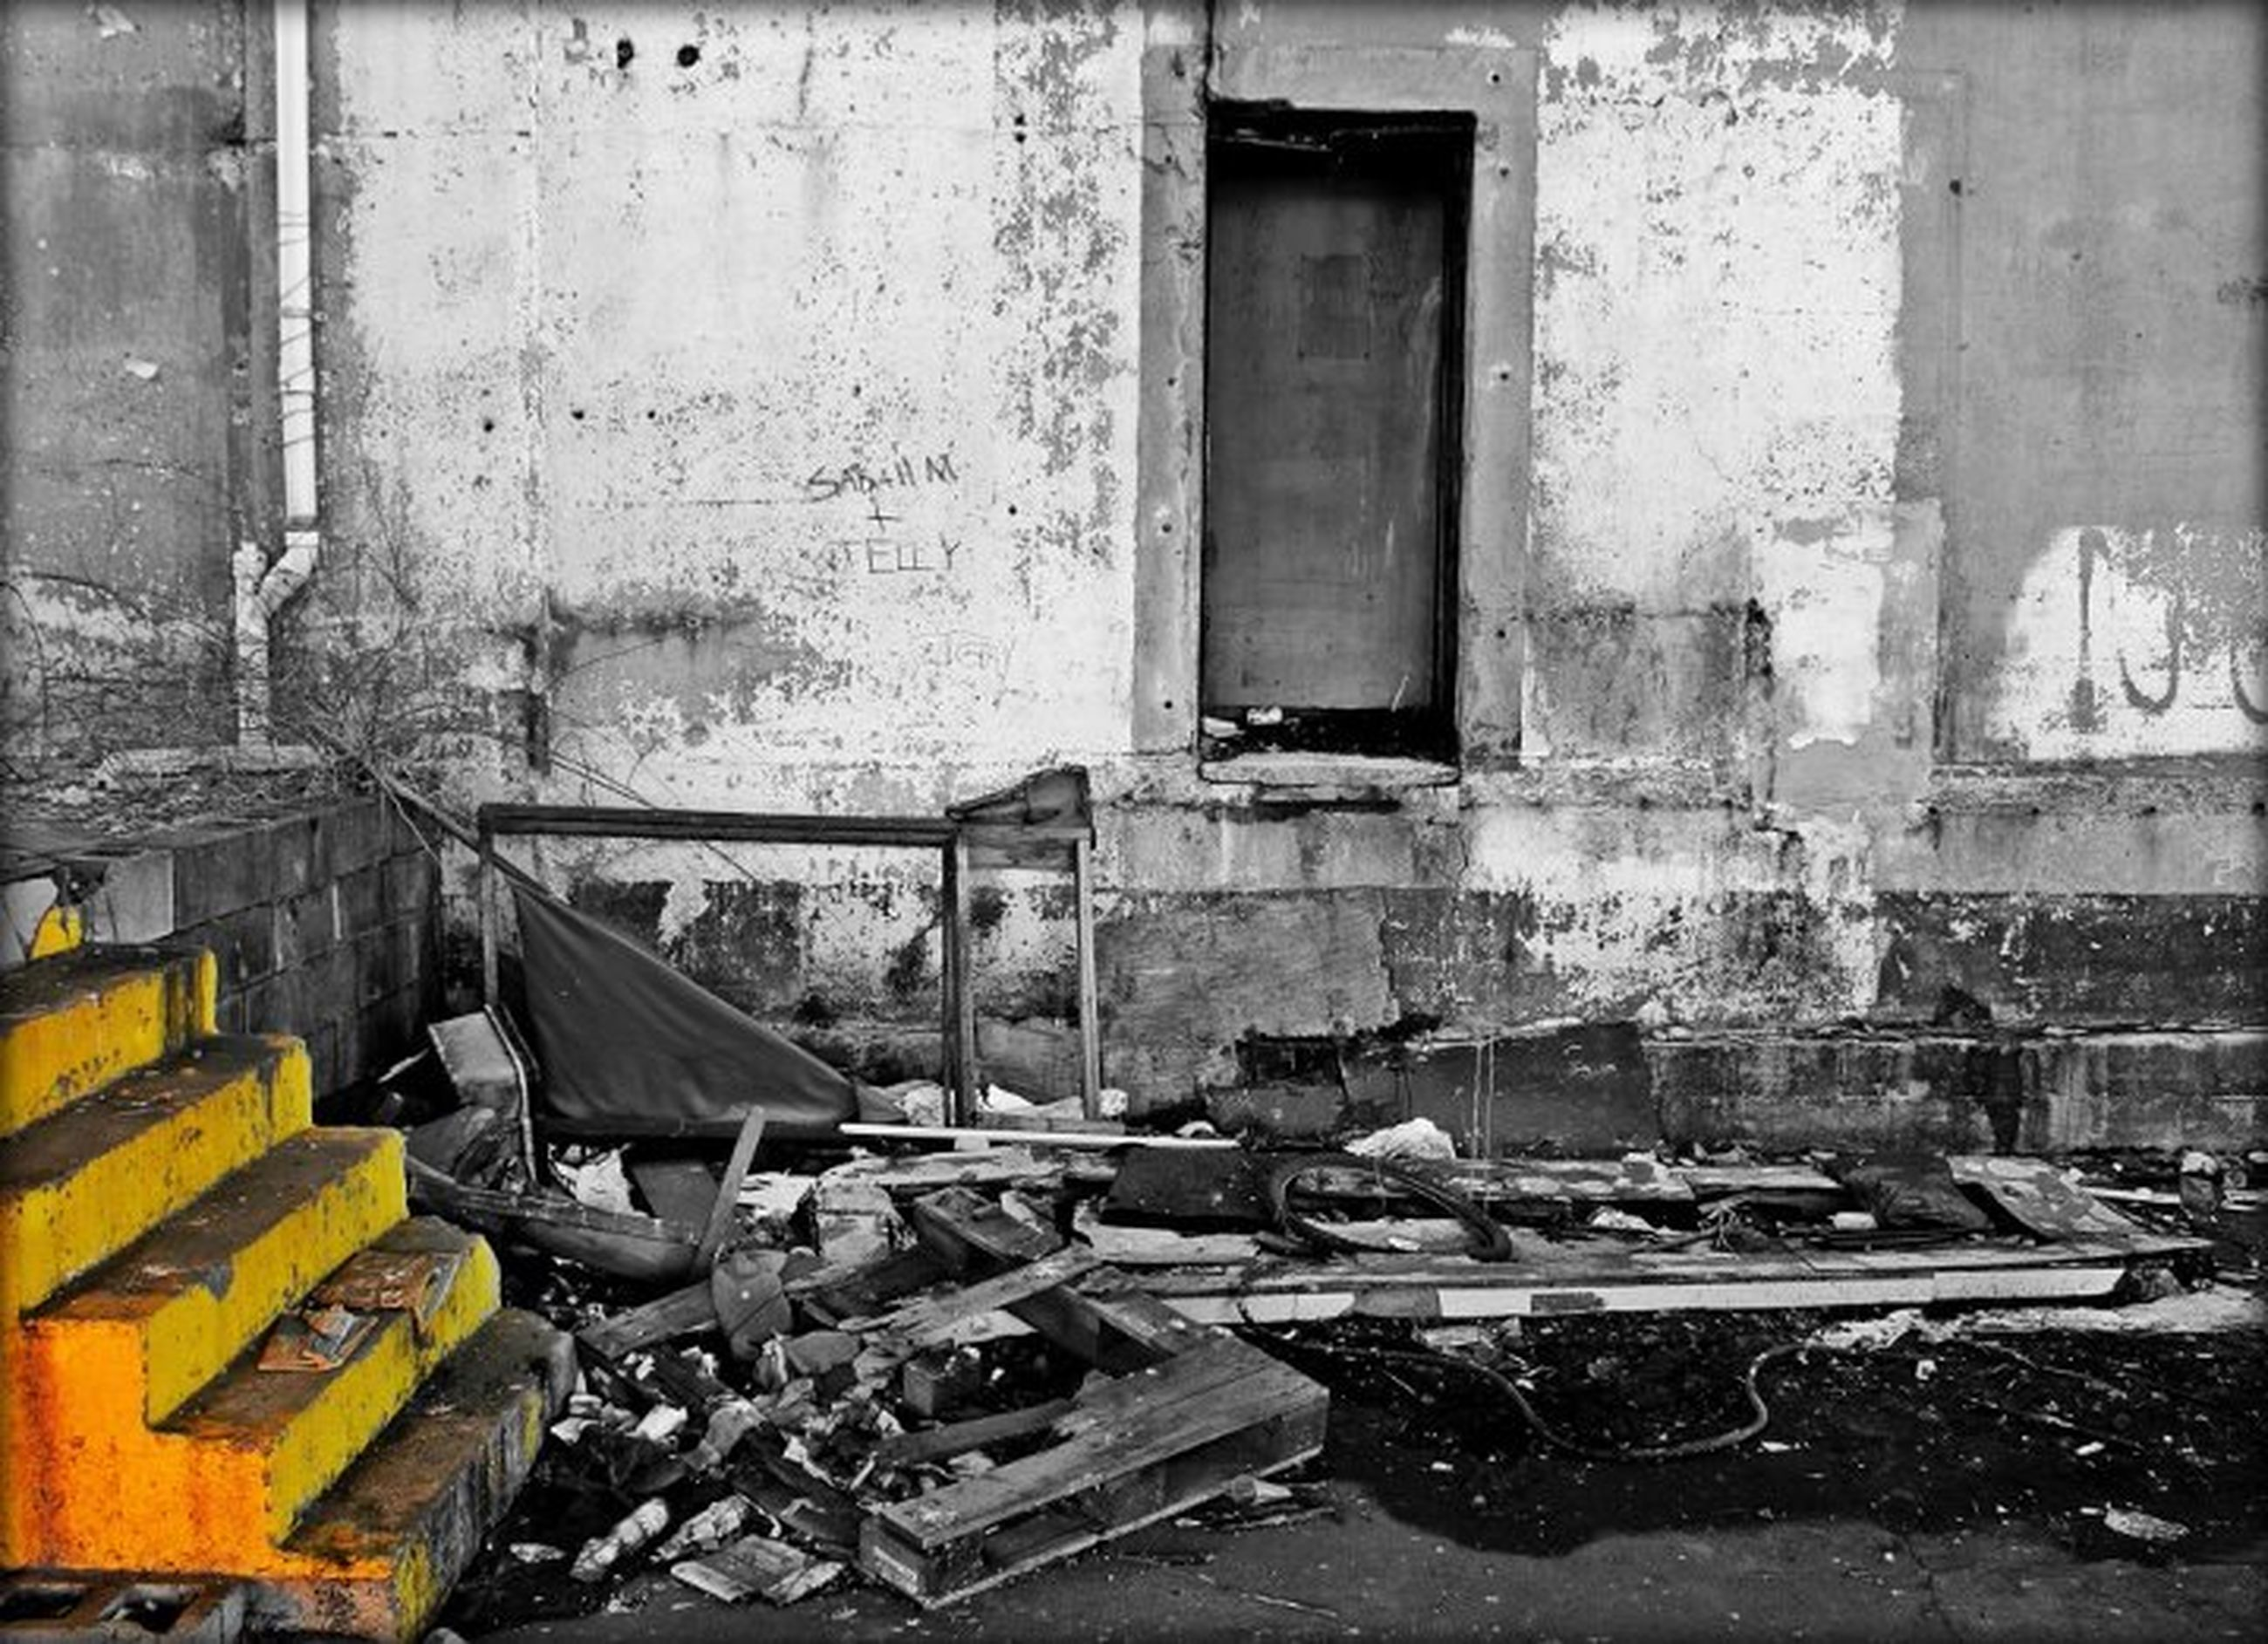 architecture, built structure, building exterior, transportation, mode of transport, abandoned, land vehicle, damaged, obsolete, old, deterioration, run-down, window, stationary, parked, weathered, house, parking, building, bad condition